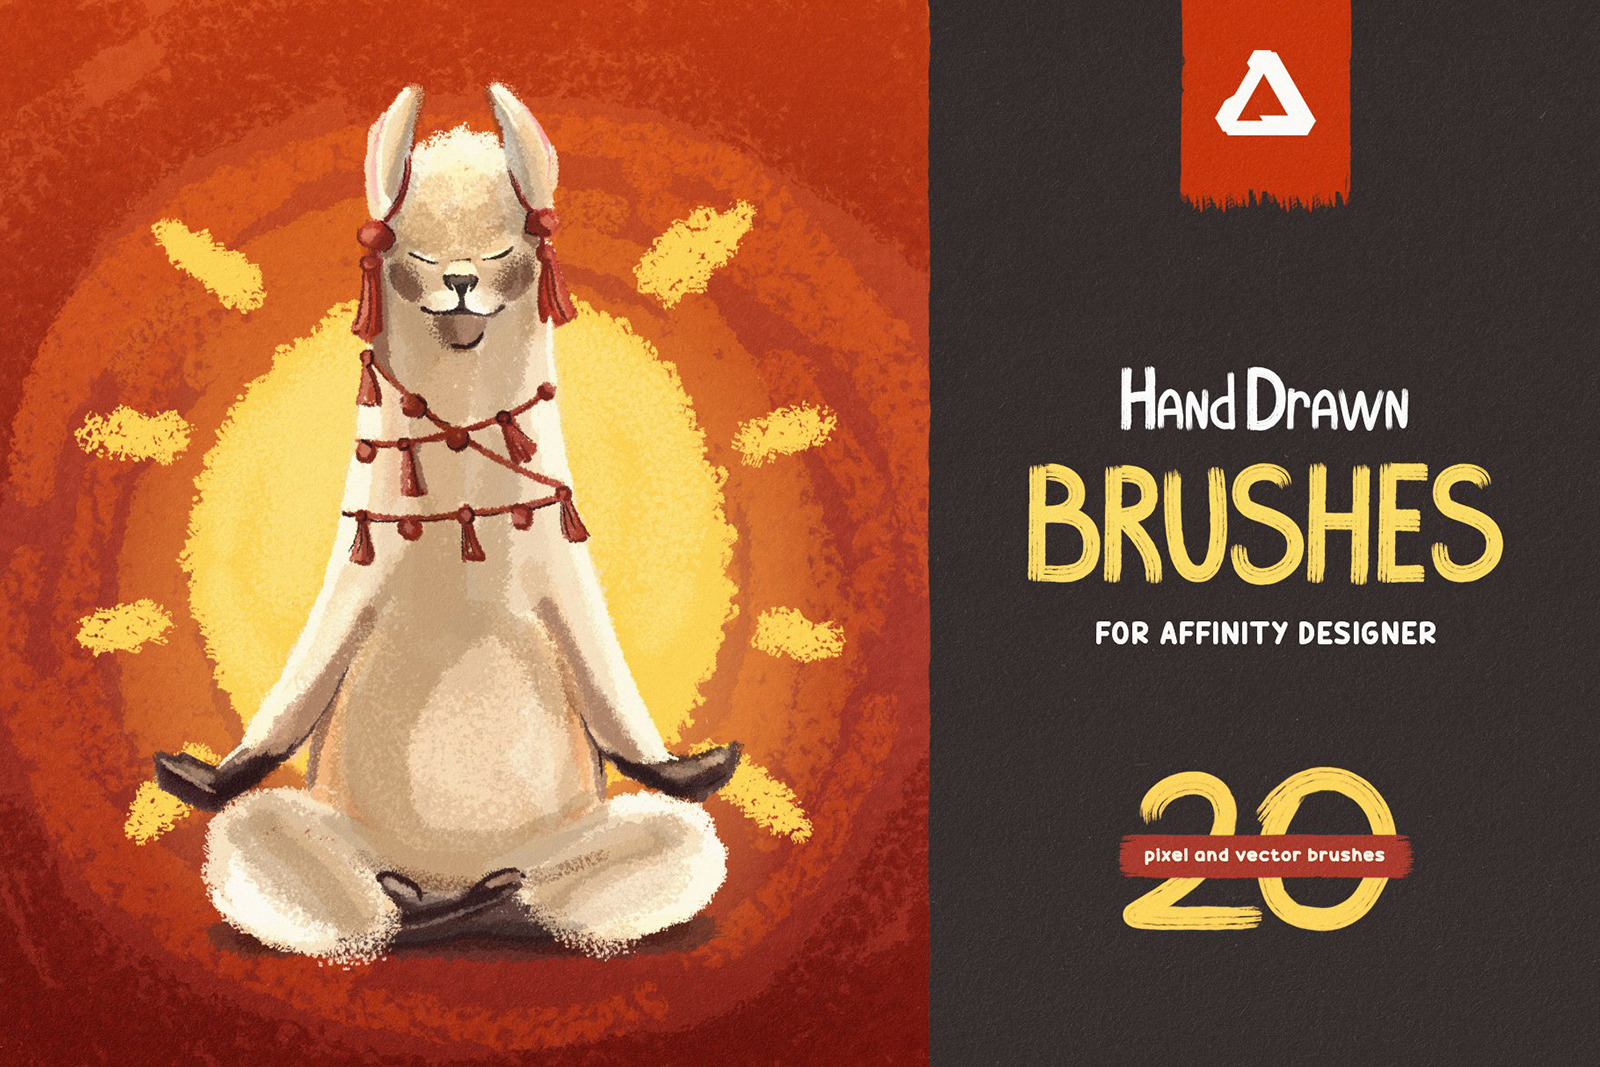 Hand Drawn Brushes for Affinity Designer